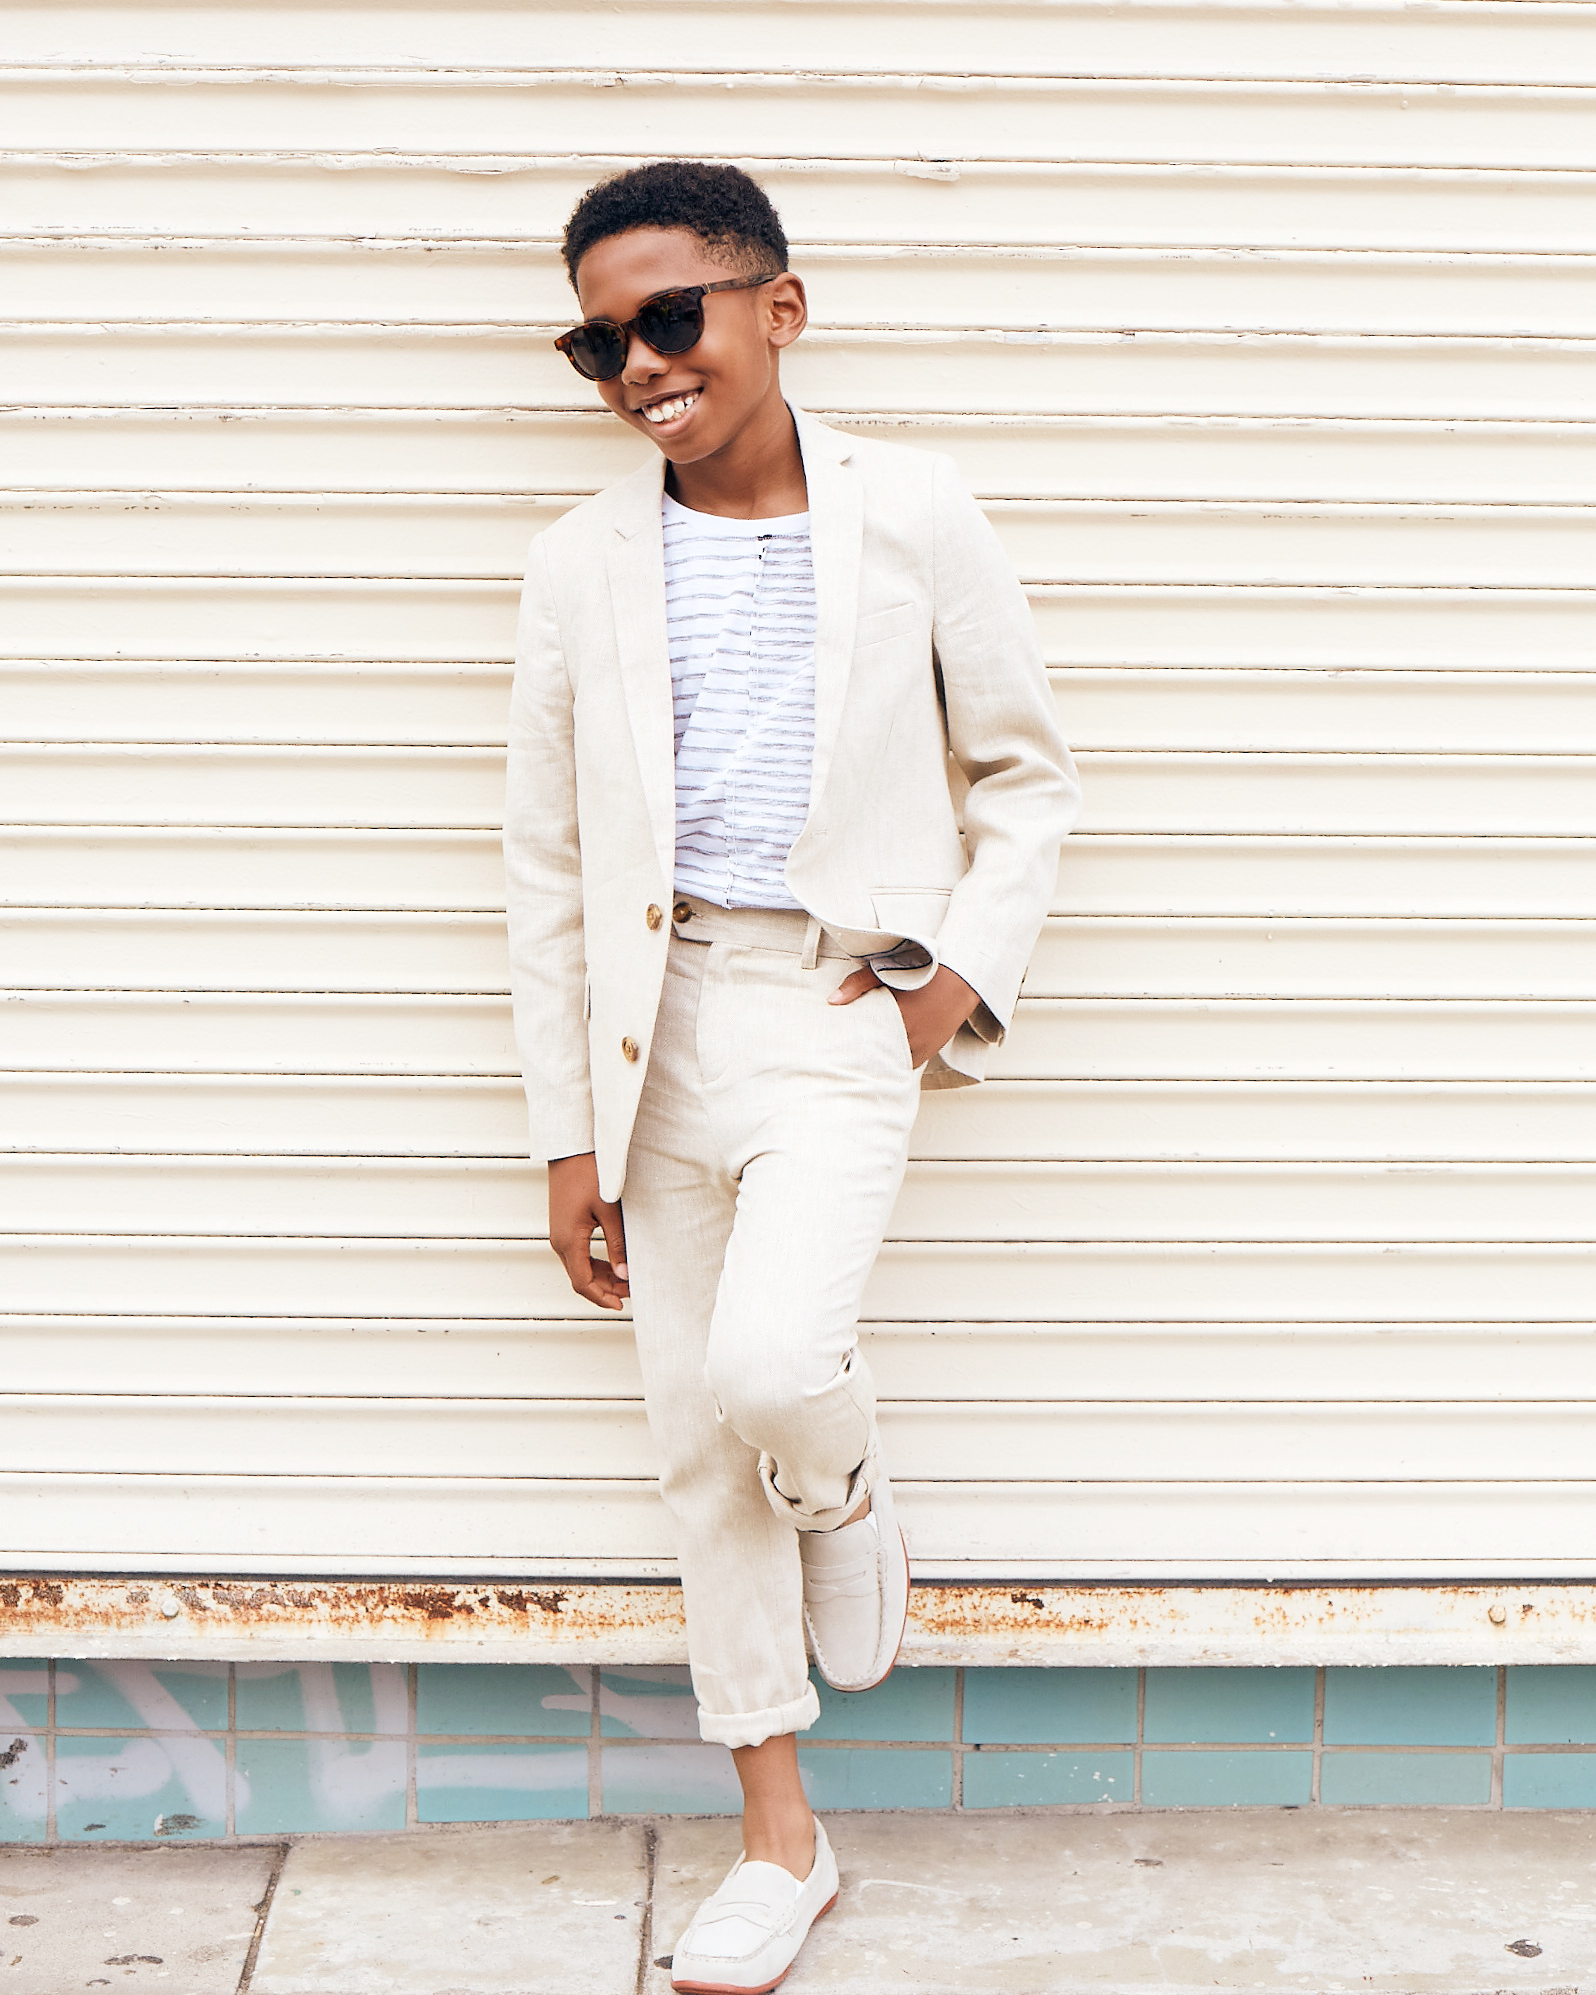 Seth Carr for Posh Kids Magazine wearing:  Suit: Appaman T-shirt: Stem Loafers: Florsheim Sunglasses: Retrosuperfuture  Wardrobe - Angelique Fortuna  Grooming - Renee Loiz  Photograph - Ryan Pavlovich